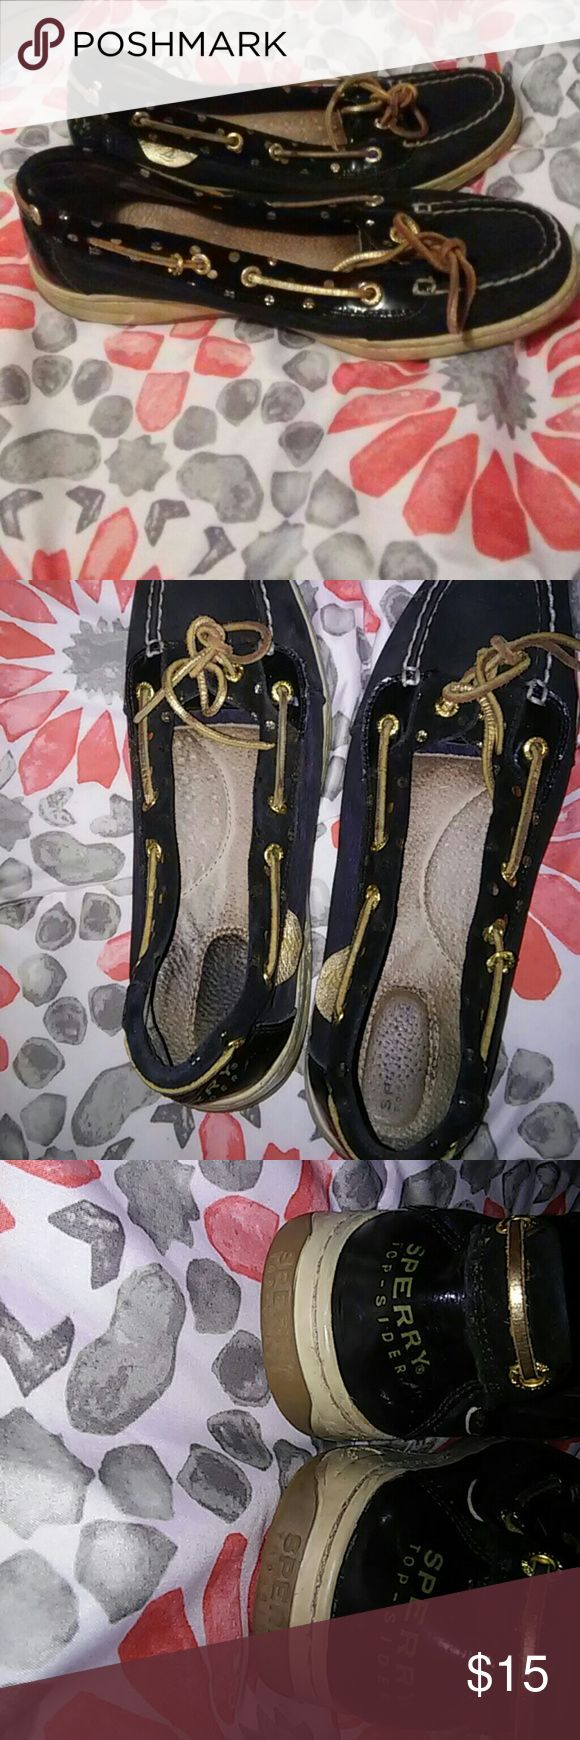 Black Sperry Top-Siders with Gold Polka Dots I've had these for 2 years and worn them plenty of times. They aren't in like new condition but they are in good condition. There are no stains or tears, there is dirt on the sides of course from wearing them often. Sperry Top-Sider Shoes Flats & Loafers